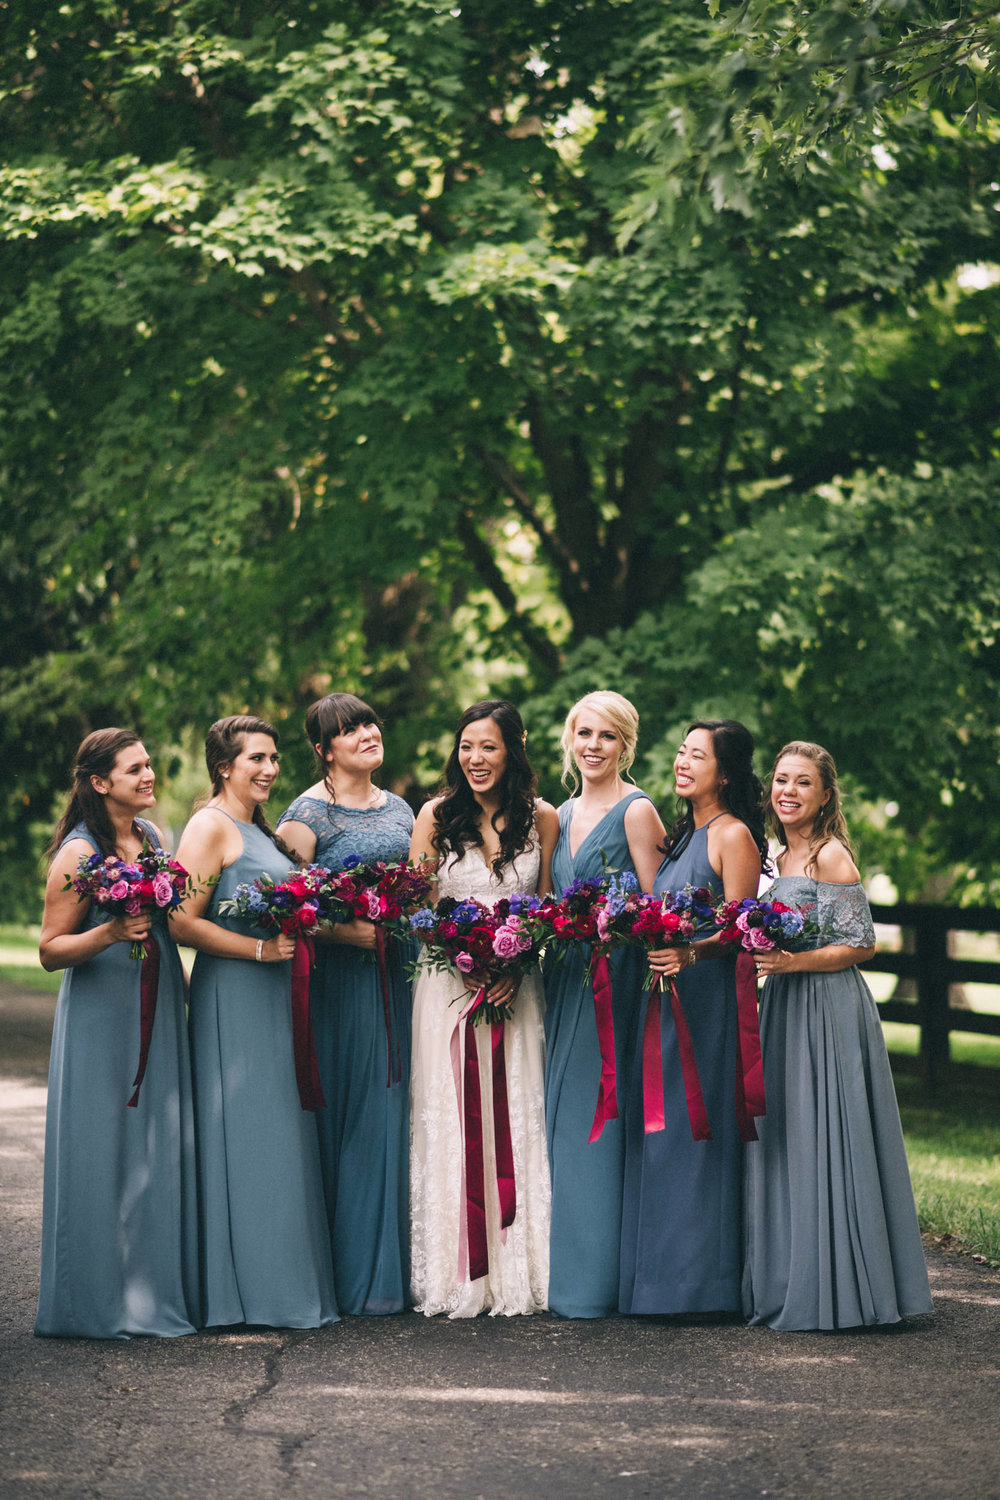 Louisville-Kentucky-Wedding-and-Elopement-Photographer-Sarah-Katherine-Davis-Photography-Summer-Jewel-Toned-Wedding-Chineese-Tea-Ceremony-Warrenwood-Manor-Danville-264.jpg